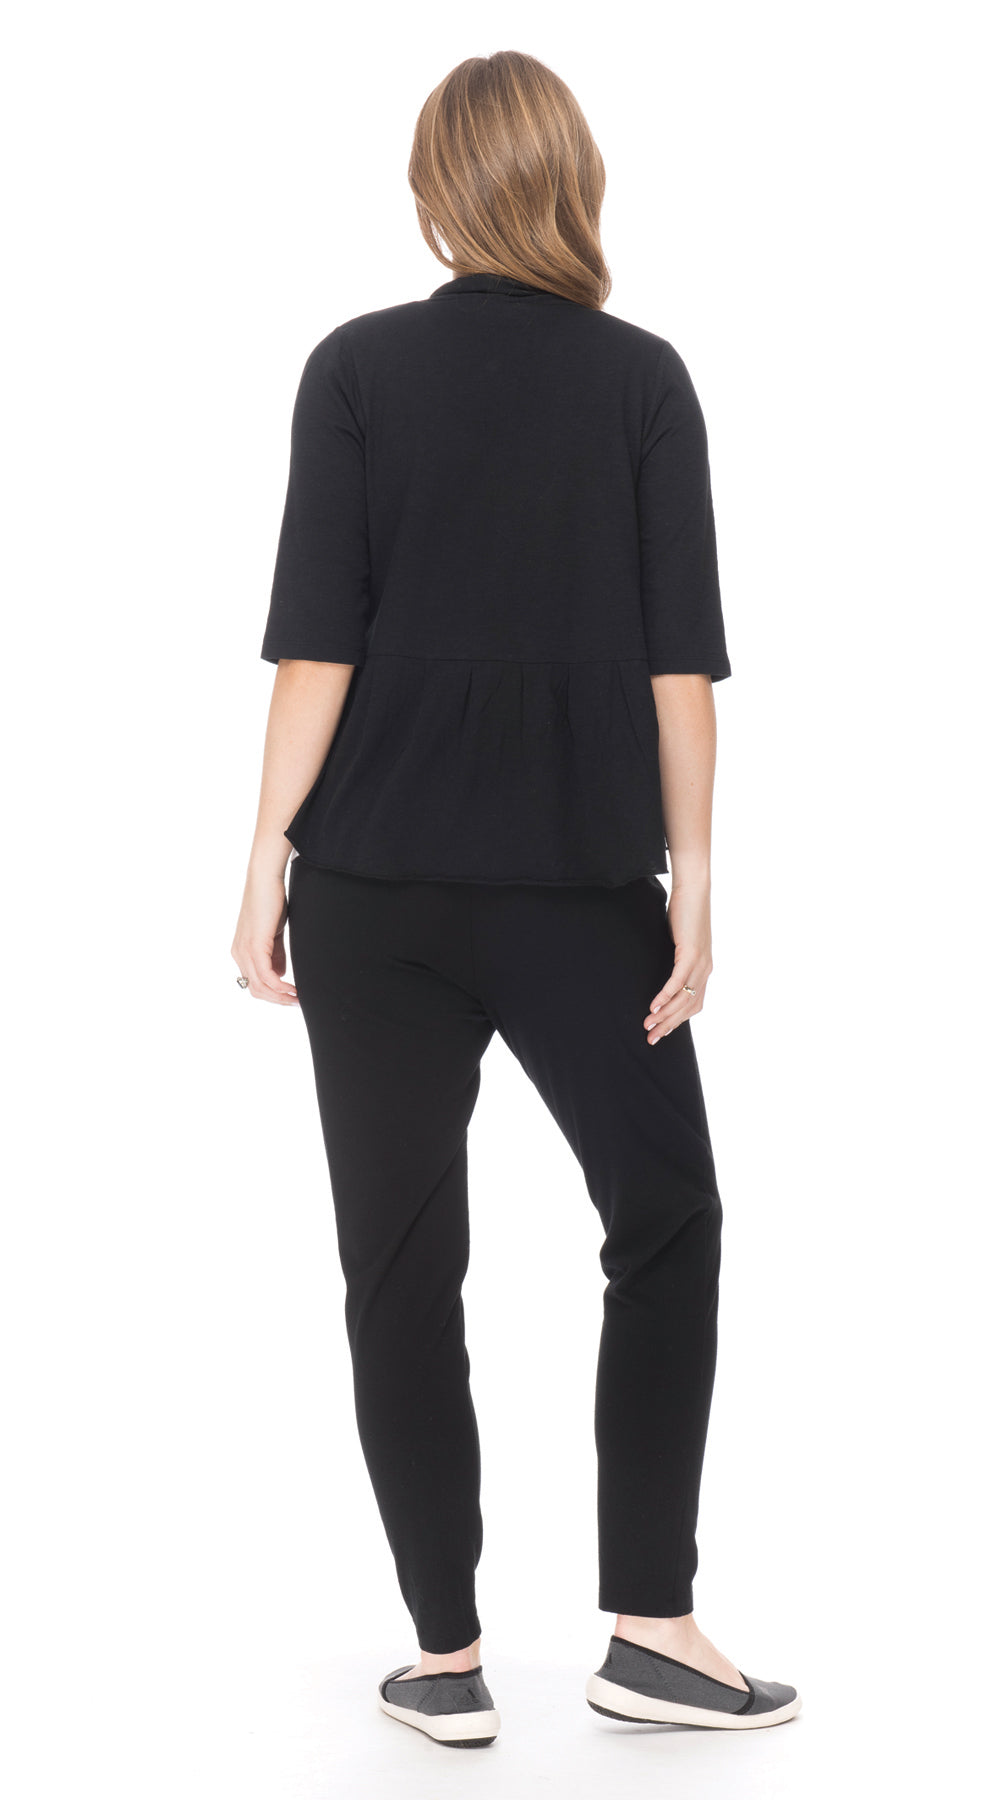 Bolero (half sleeve) - black - org.cotton